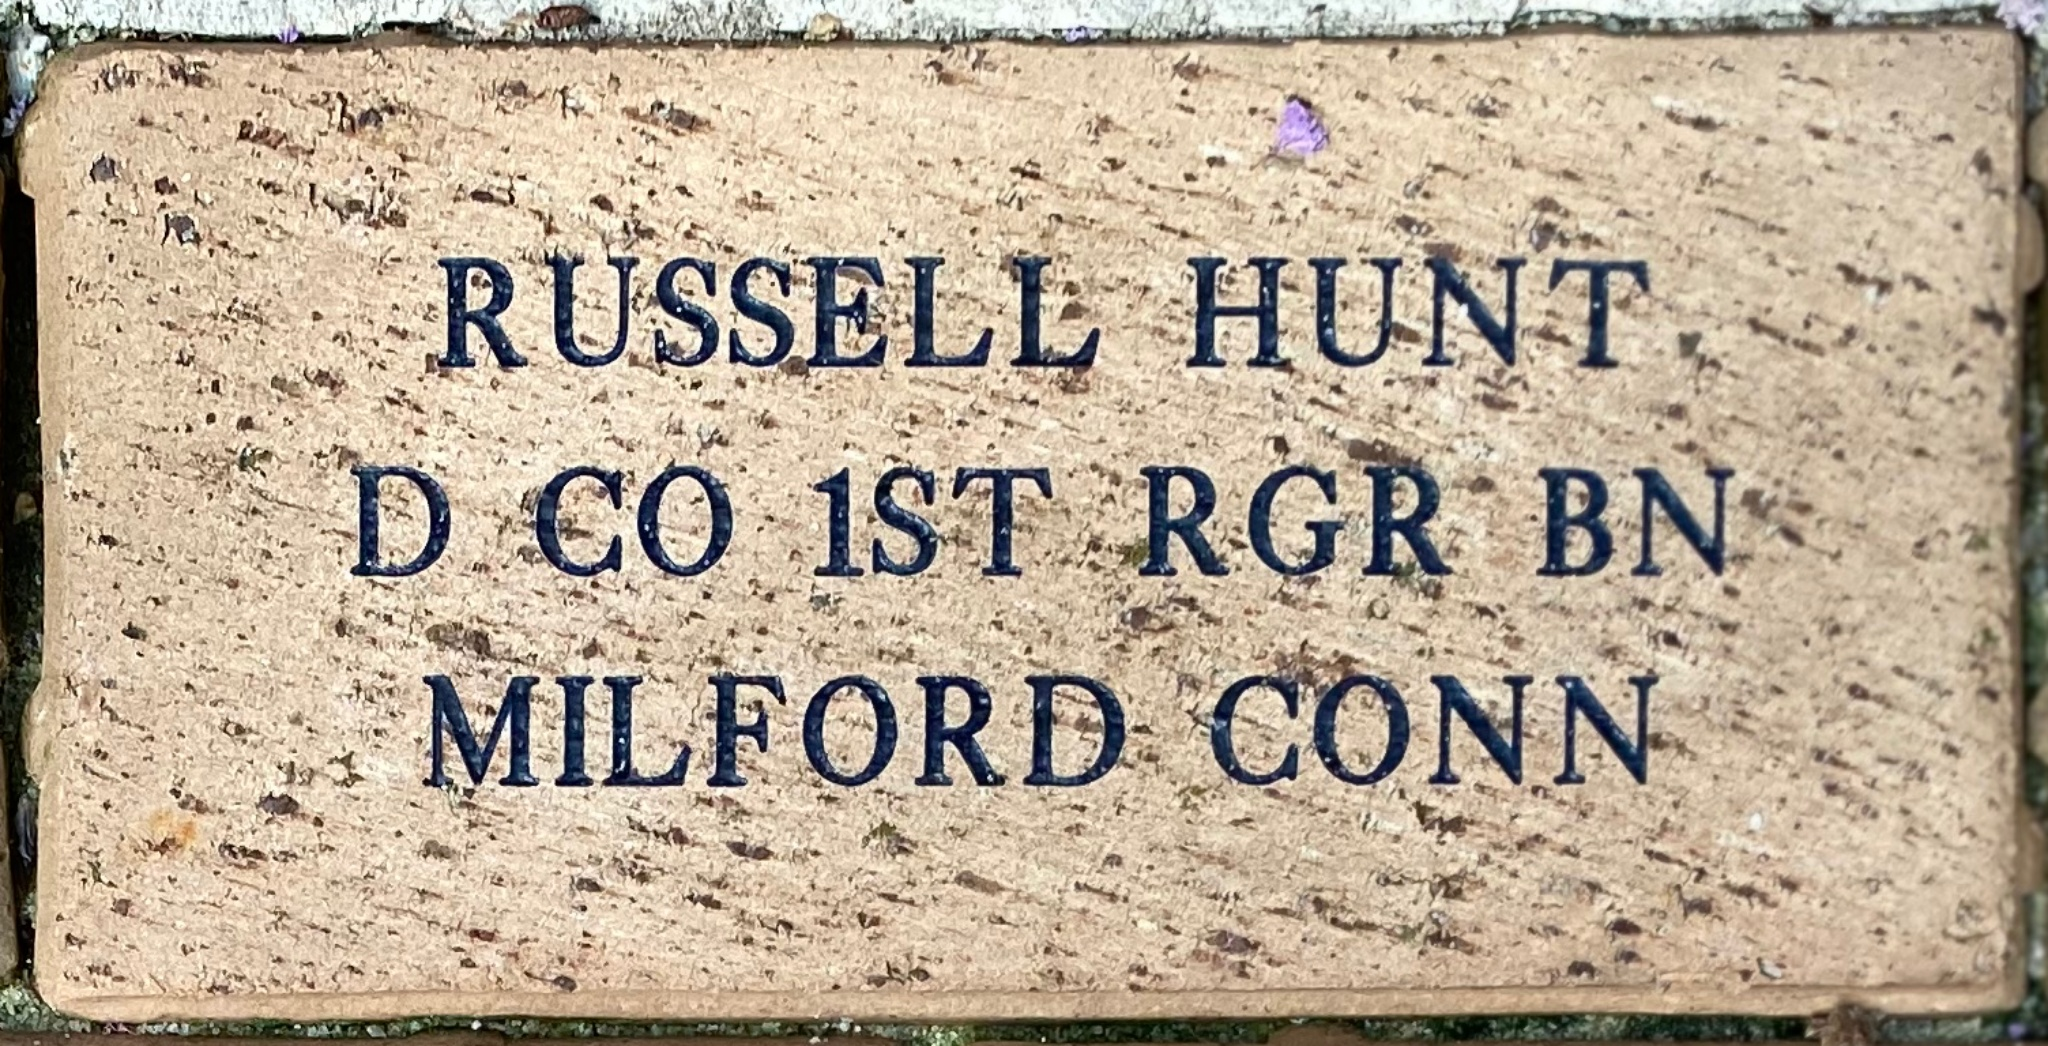 RUSSELL W HUNT D CO 1ST RGR BN MILFORD CONN